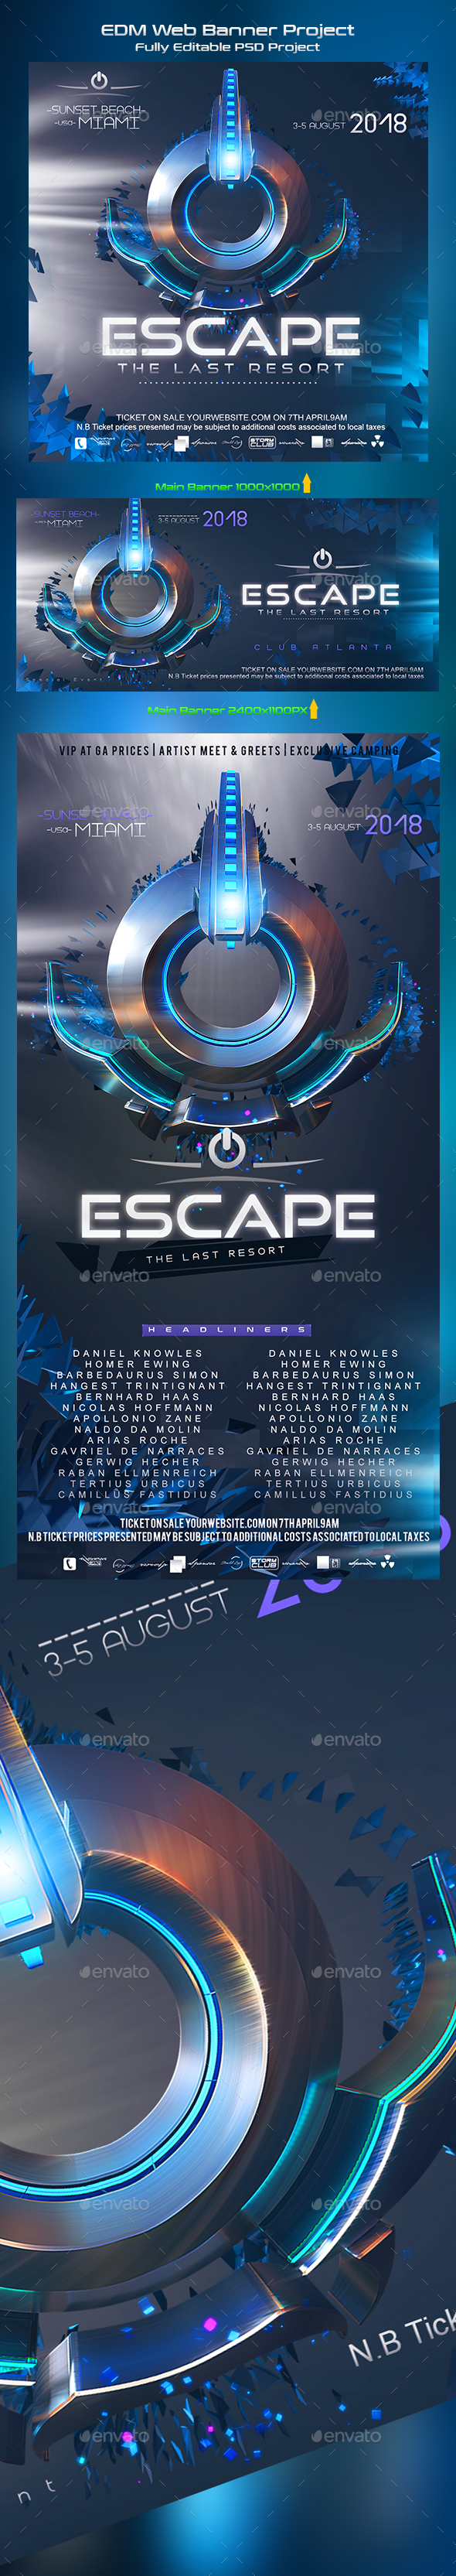 Escape EDM Banner - Miscellaneous Social Media